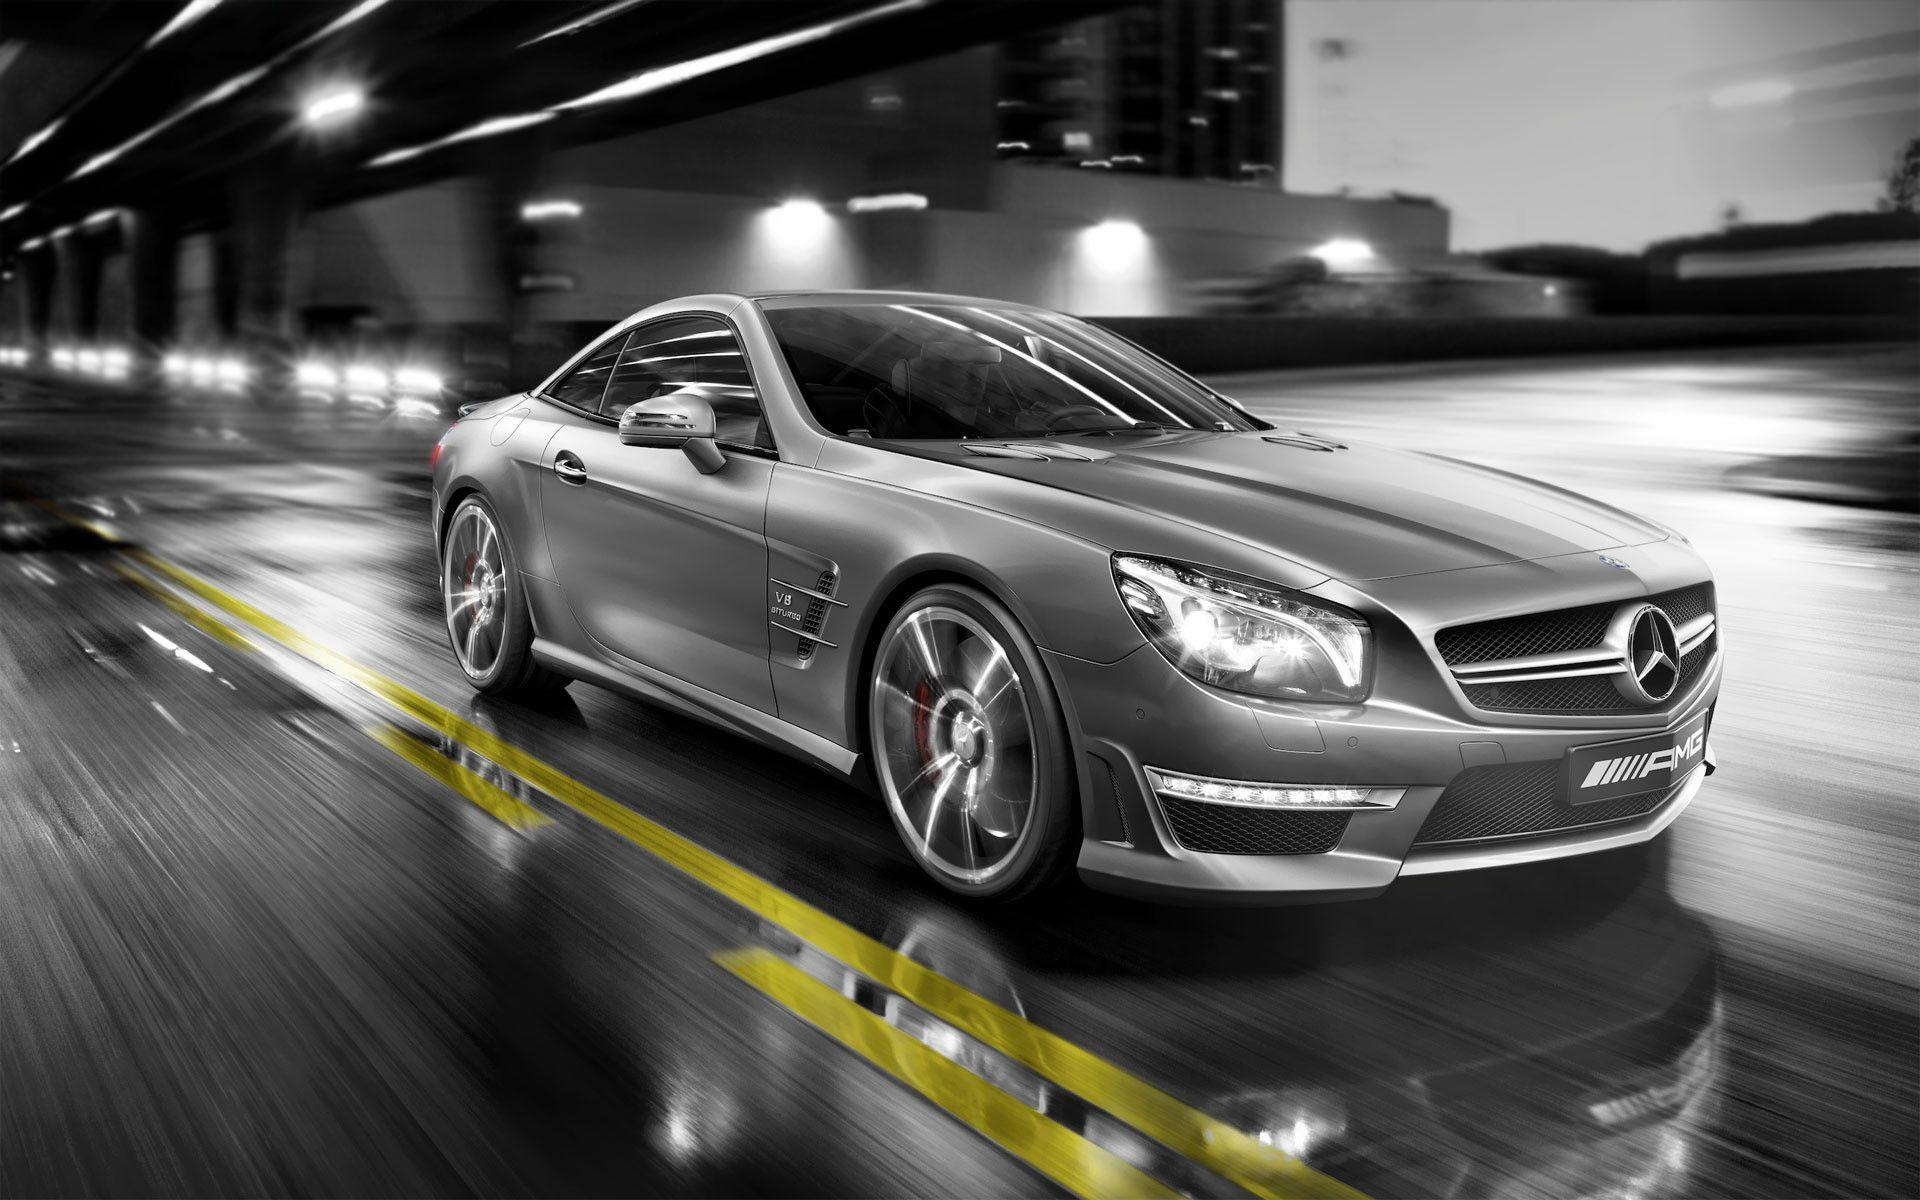 95 Mercedes Amg Sl63 Sl65 Wallpapers On Wallpapersafari Images, Photos, Reviews